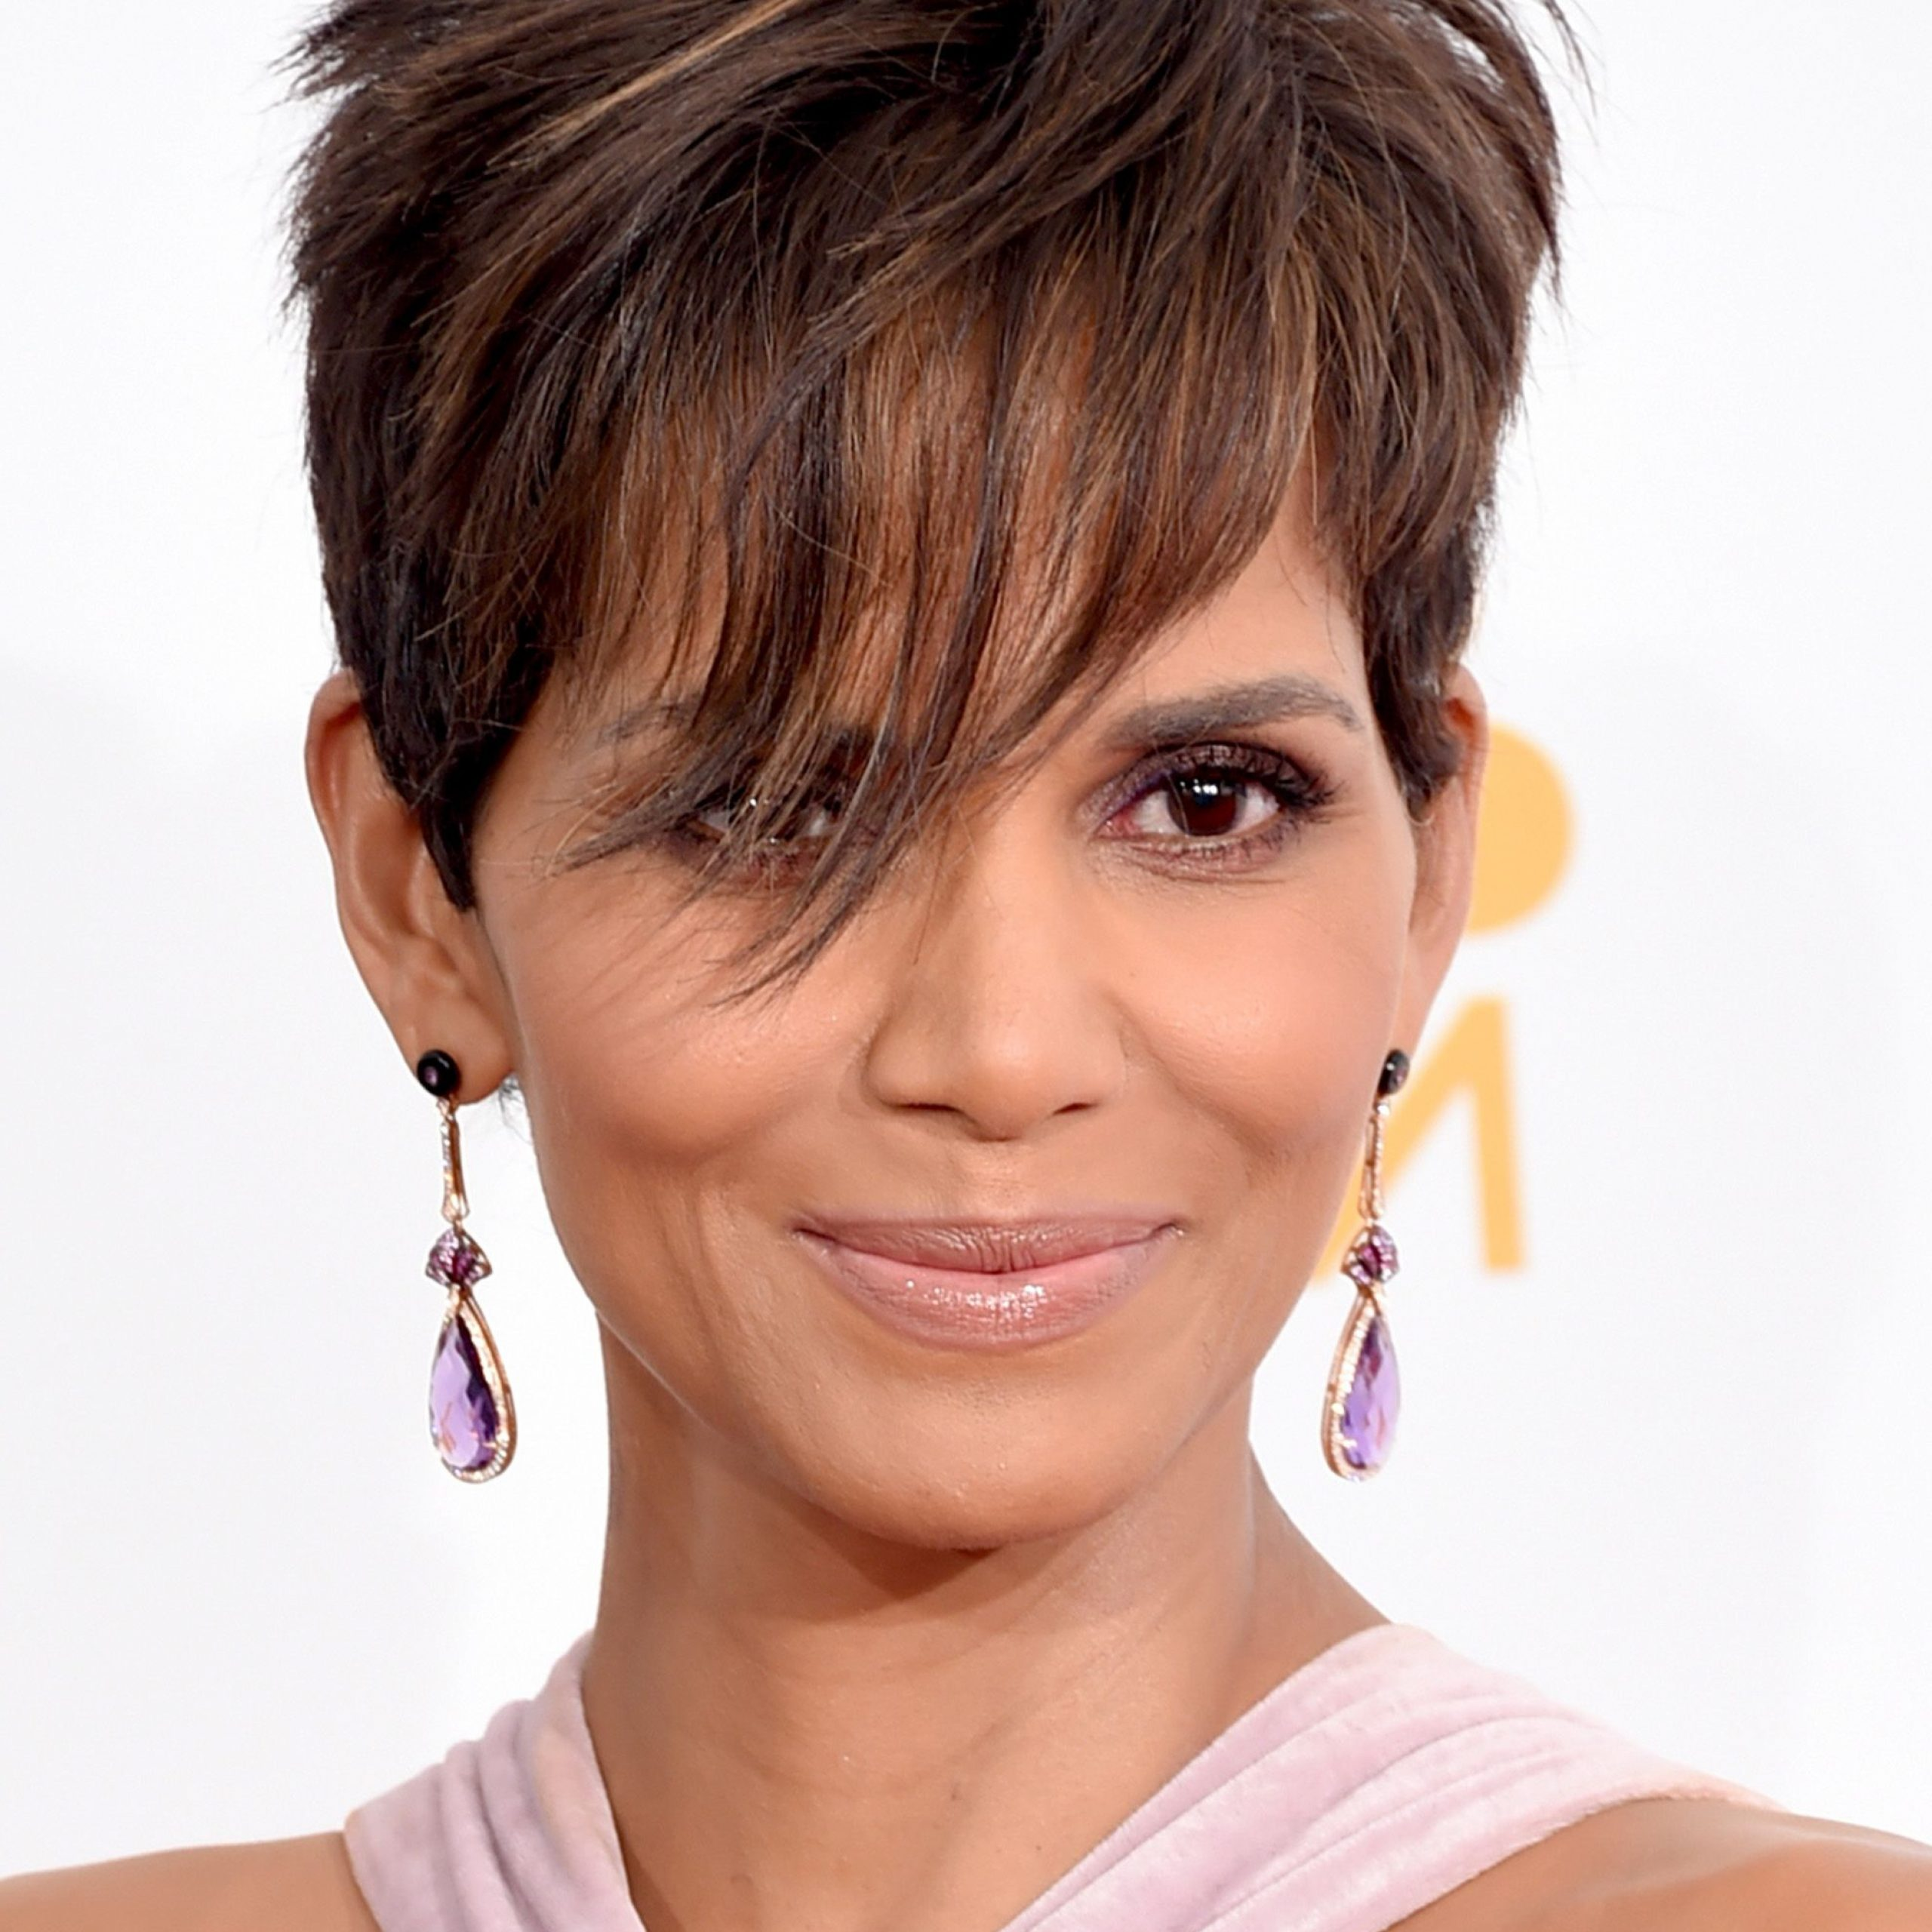 40 Best Short Pixie Cut Hairstyles 2019 – Cute Pixie Throughout Neat Pixie Haircuts For Gamine Girls (View 4 of 20)